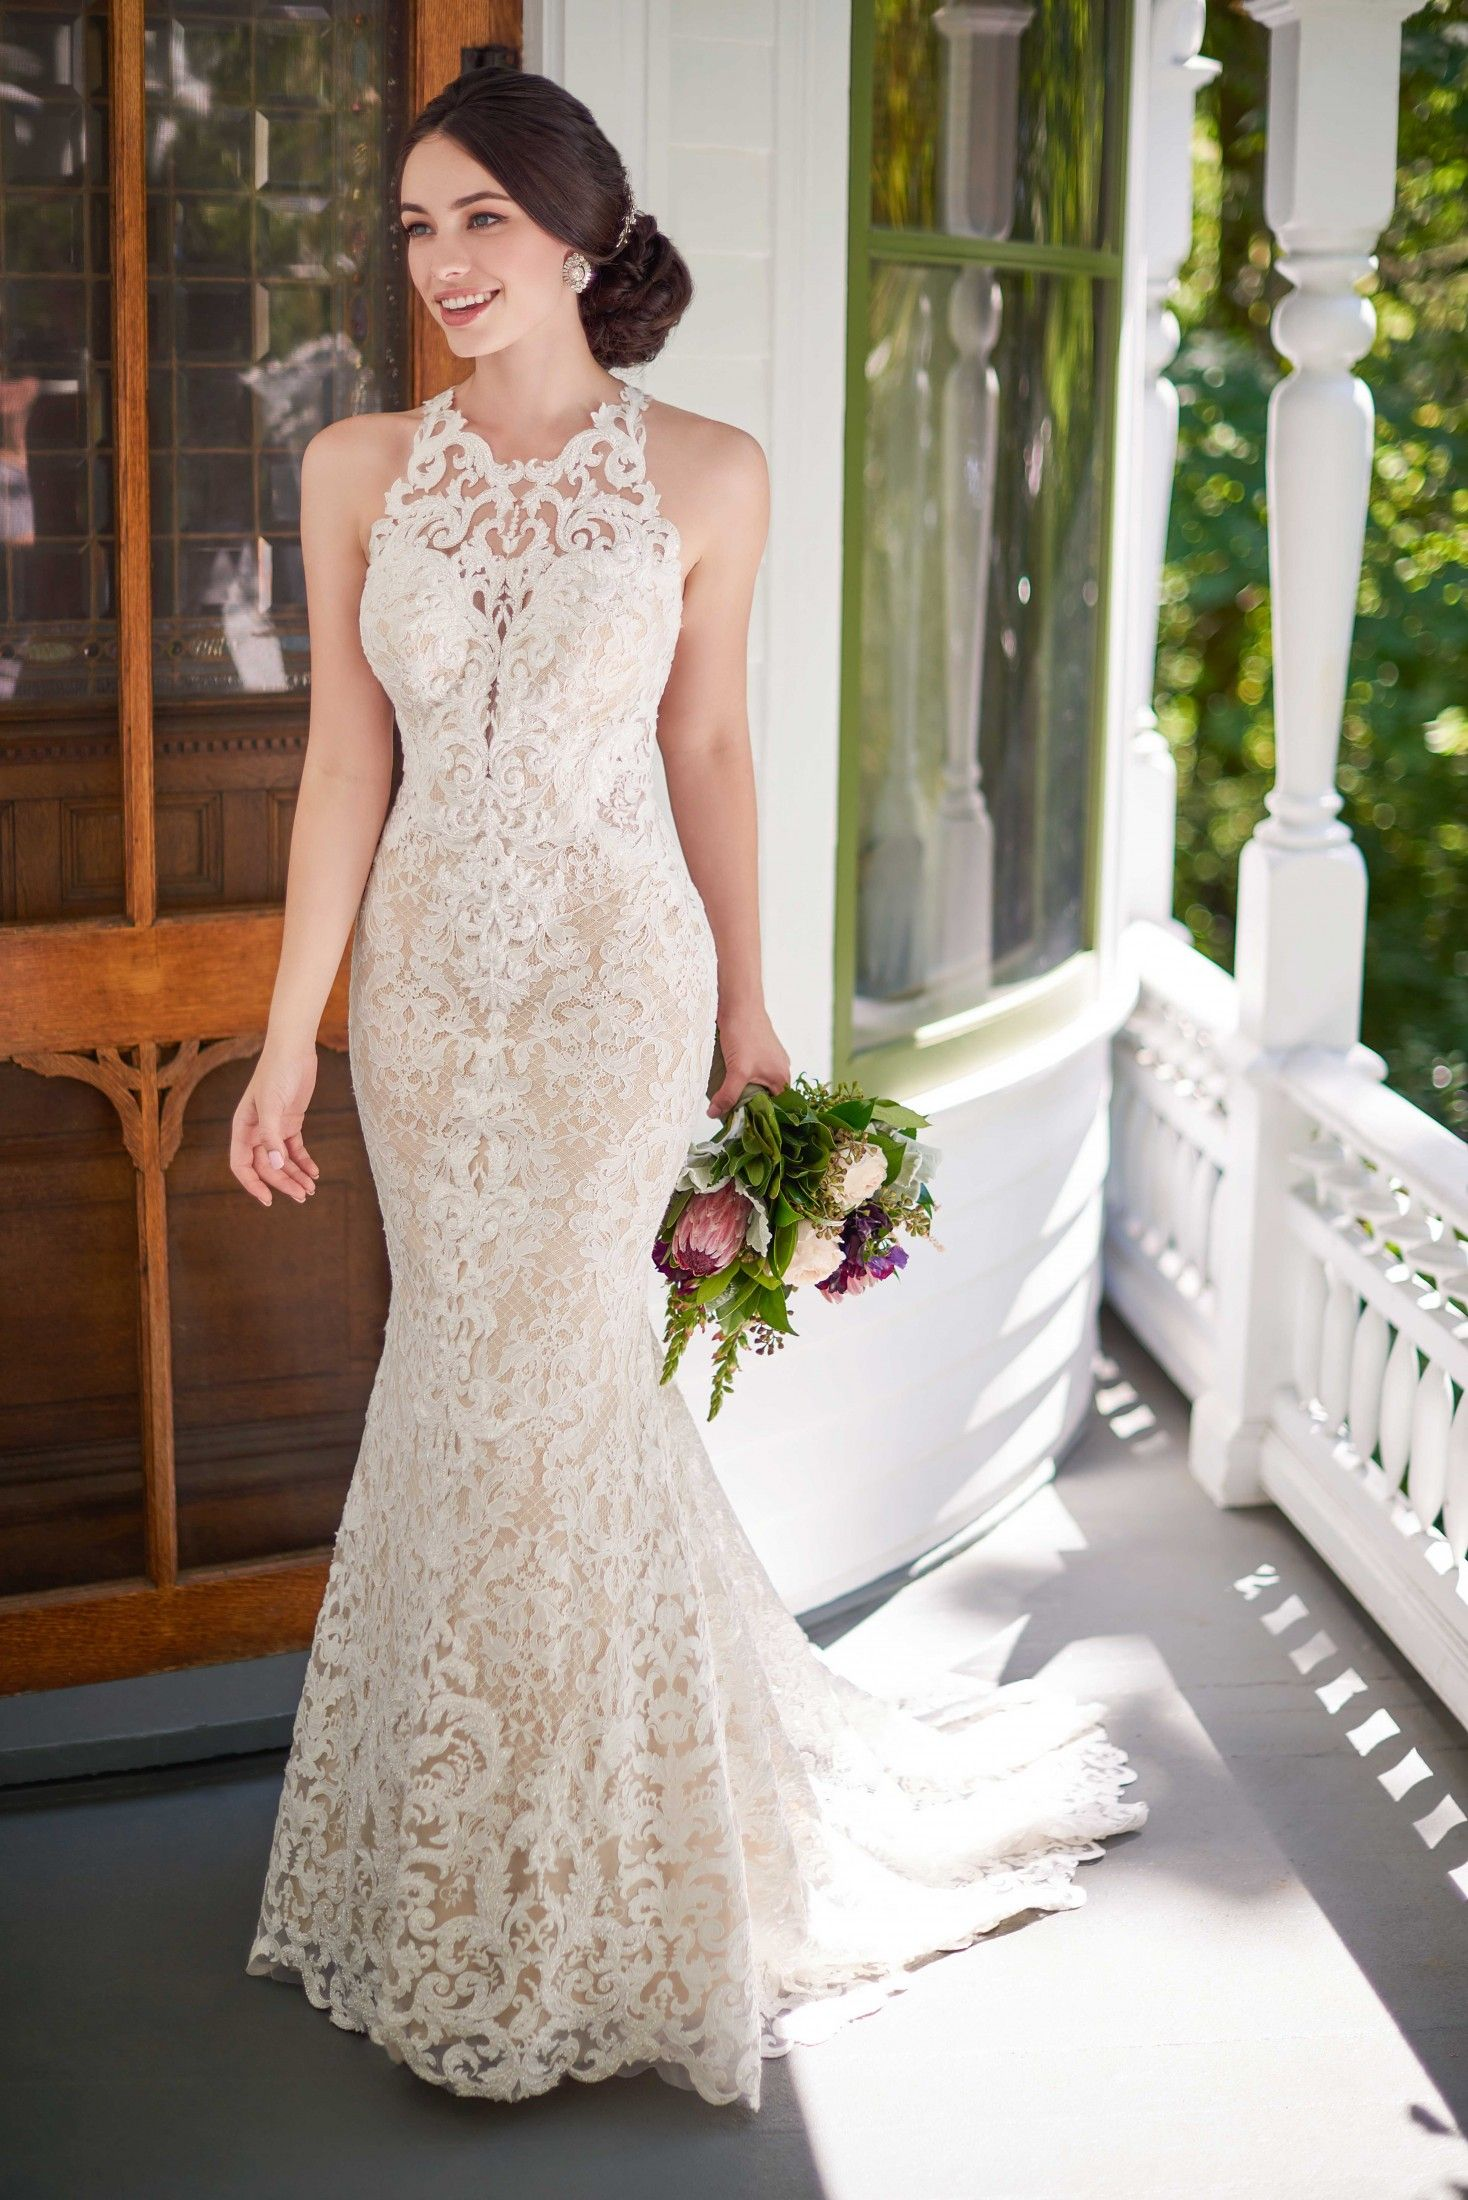 Dress for barn wedding  ad Click to find the wedding dress youuve been dreaming of on